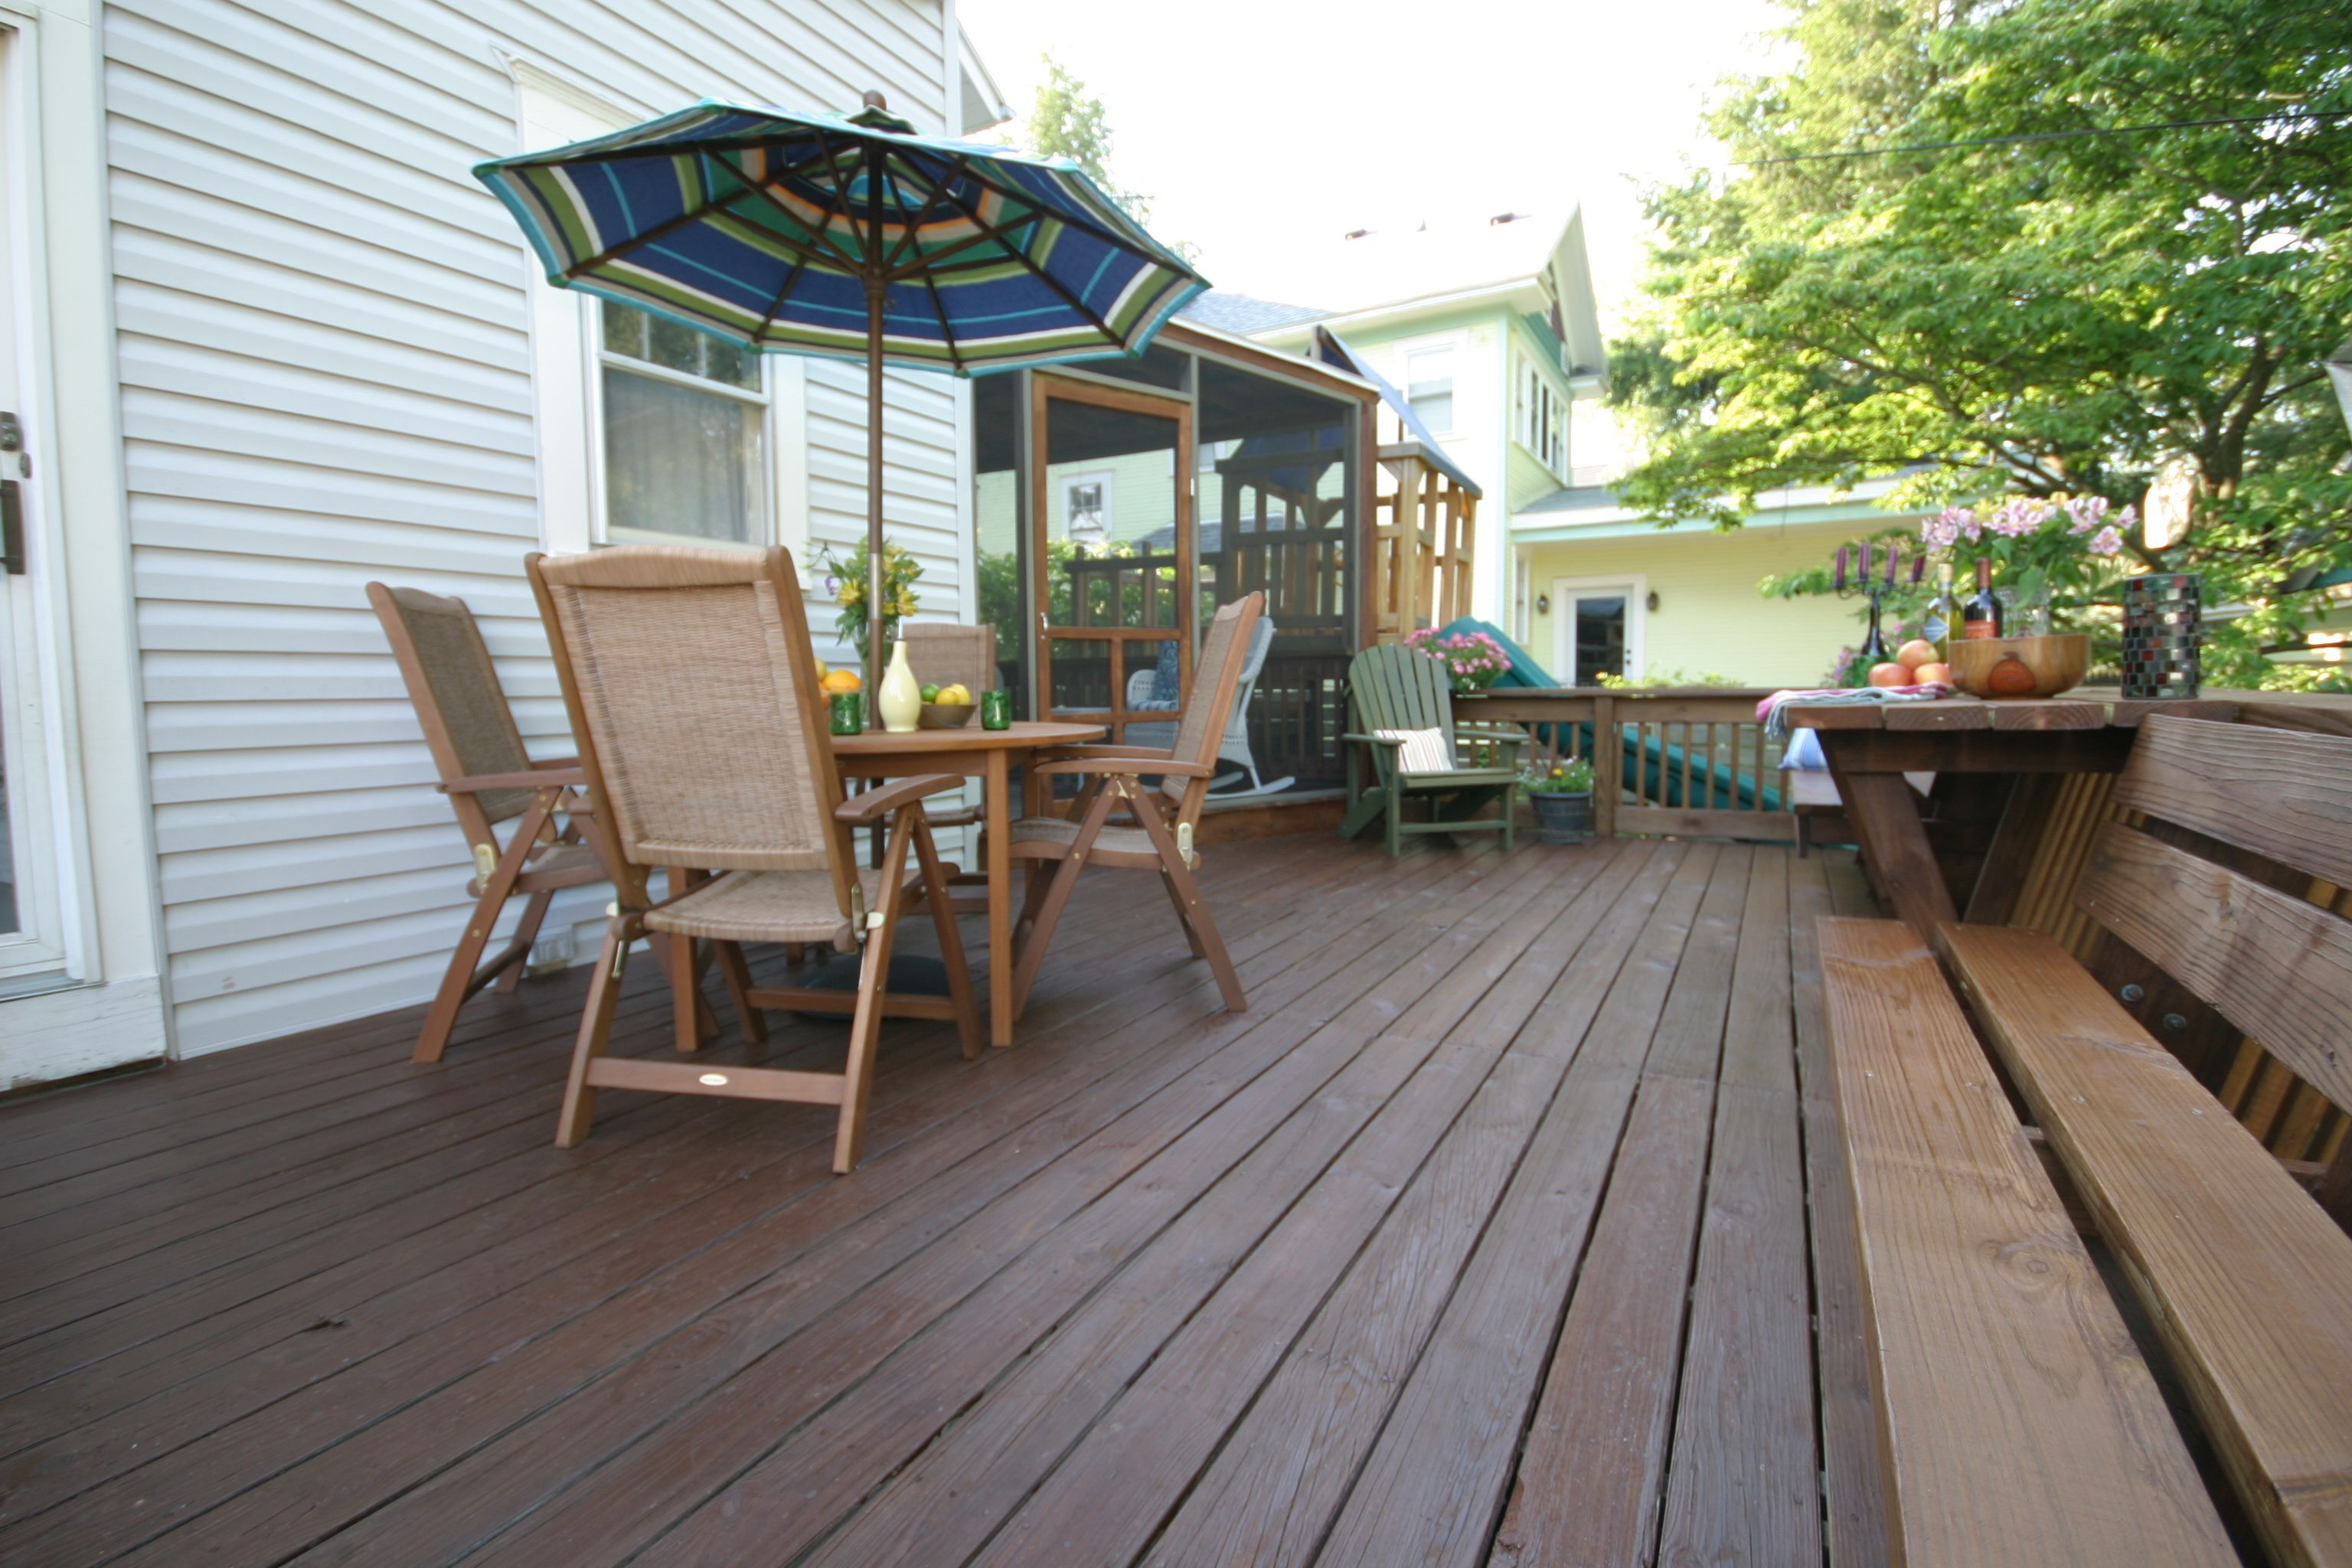 This Deck Is Protected With Thompson S Water Seal Advanced Tinted Wood Protector In Sheer Nutmeg Brown House Styles House Exterior Thompsons